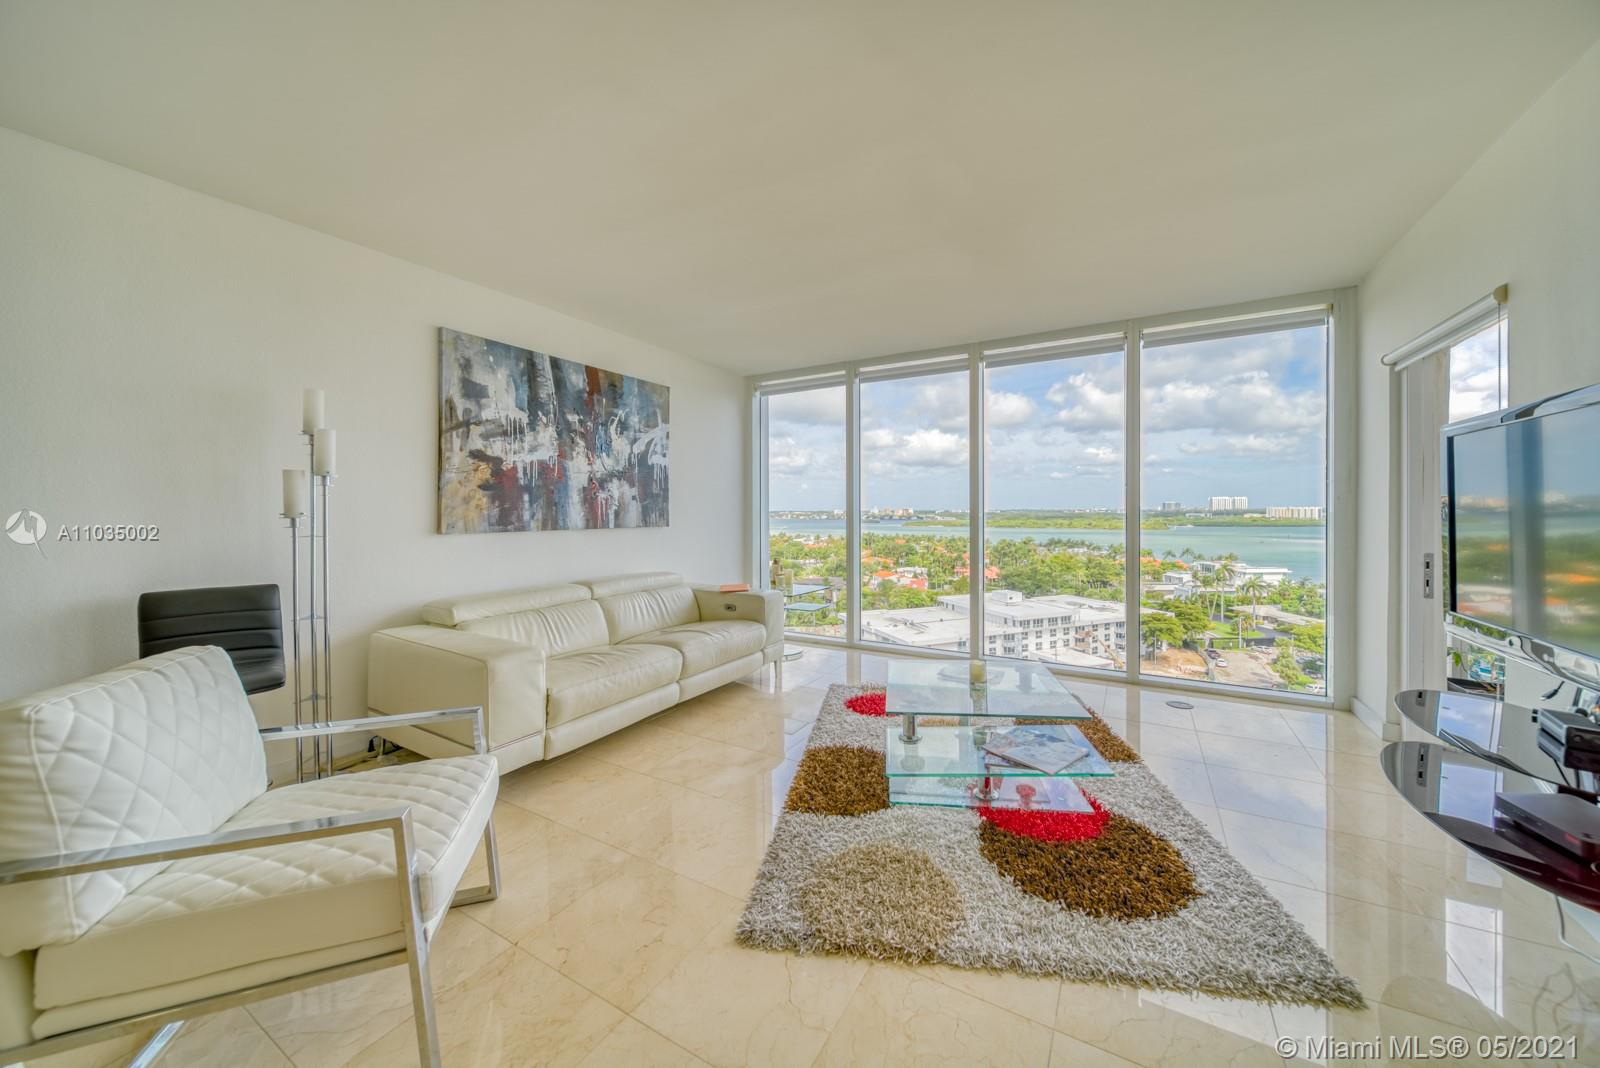 Luxurious, very bright 1 bed/1.5 bath condo located in an oceanfront 5 star luxury building in Bal Harbour.  Marble floors, modern kitchen/bathrooms, open balcony with spectacular unobstructed views of the intracoastal/bay/Bal Harbour & floor to ceiling hurricane windows so you can enjoy the view from inside the living area as well.  Building features full service spa, state of the art fitness center, cafe/restaurant, 24 hour security, valet parking, beautiful pool, direct beach access offering beach service for residents & more.  Building rental policy allows 6 month rentals which makes this a great primary residence, investment property or vacation condo enabling the owner to rent for half of the year to offset costs.